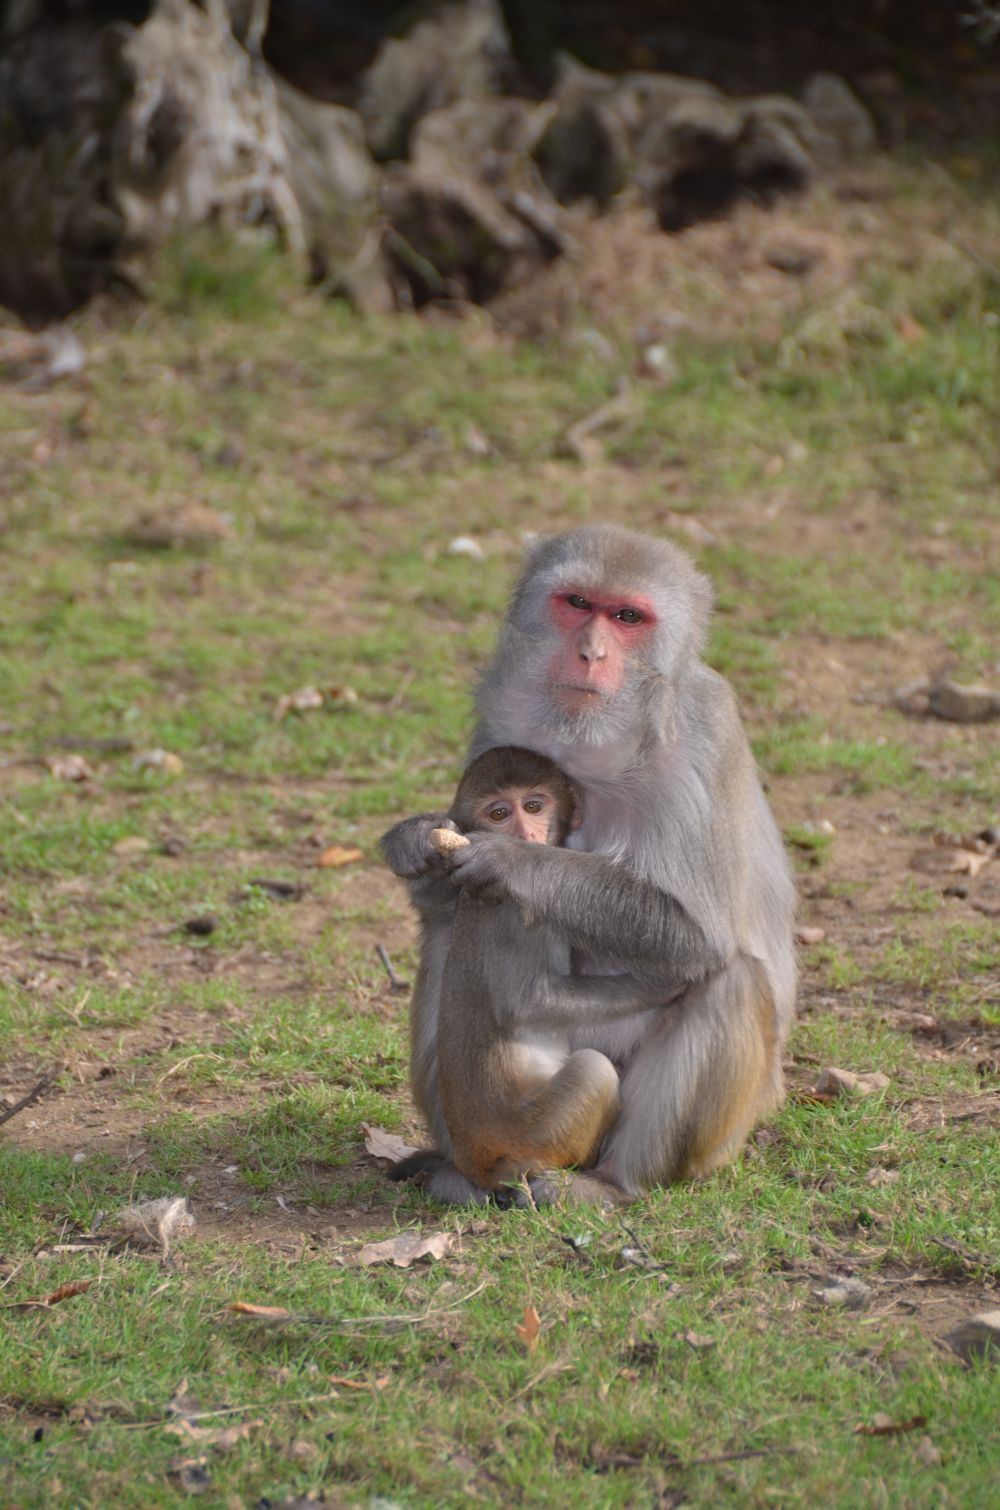 Rhesus macaque baby and mum; photo credit One Voice